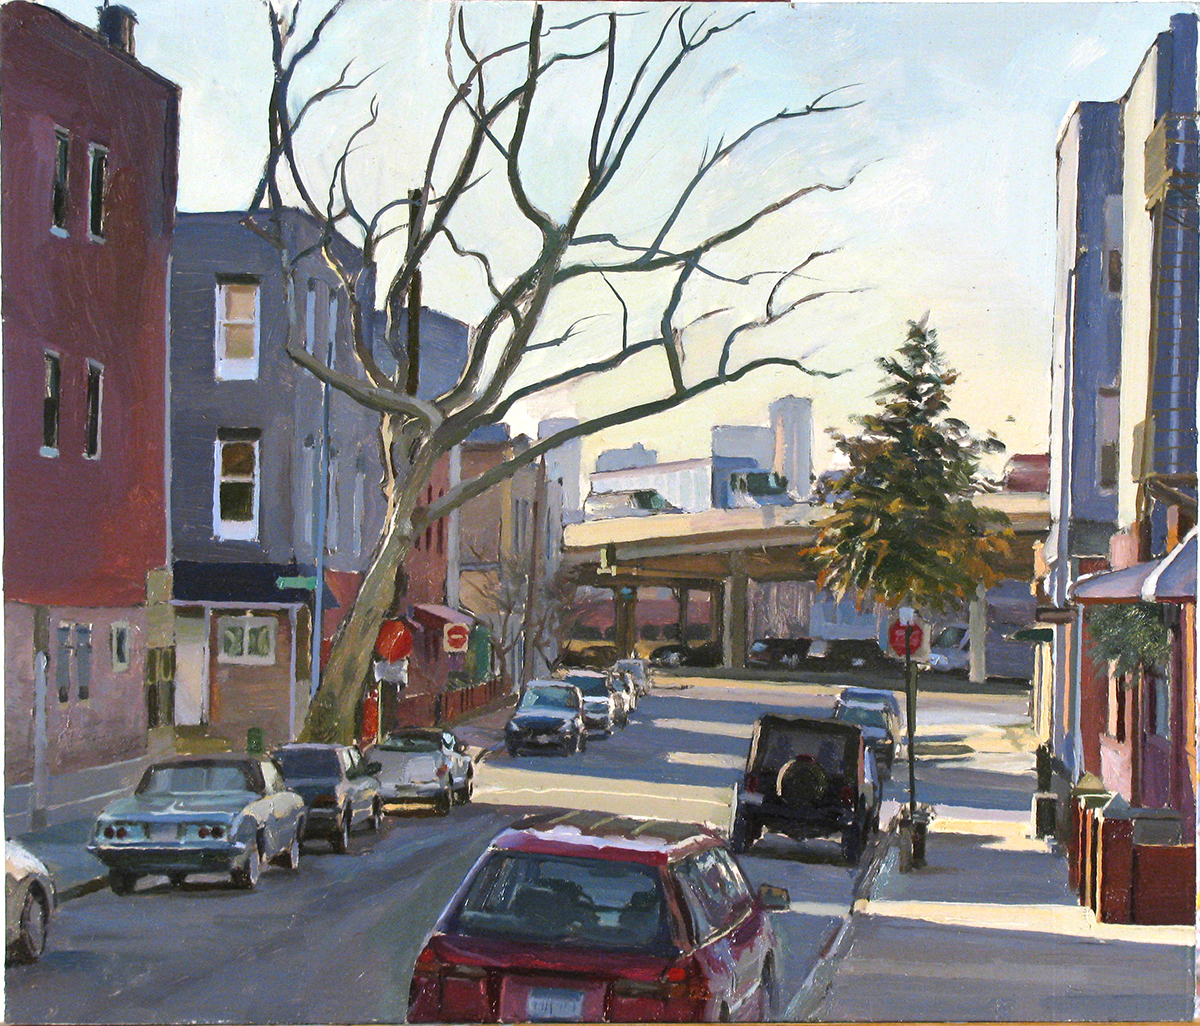 "K-41: FROST ST. near BQE, BROOKLYN oil on panel 14 x 16"" 2009"